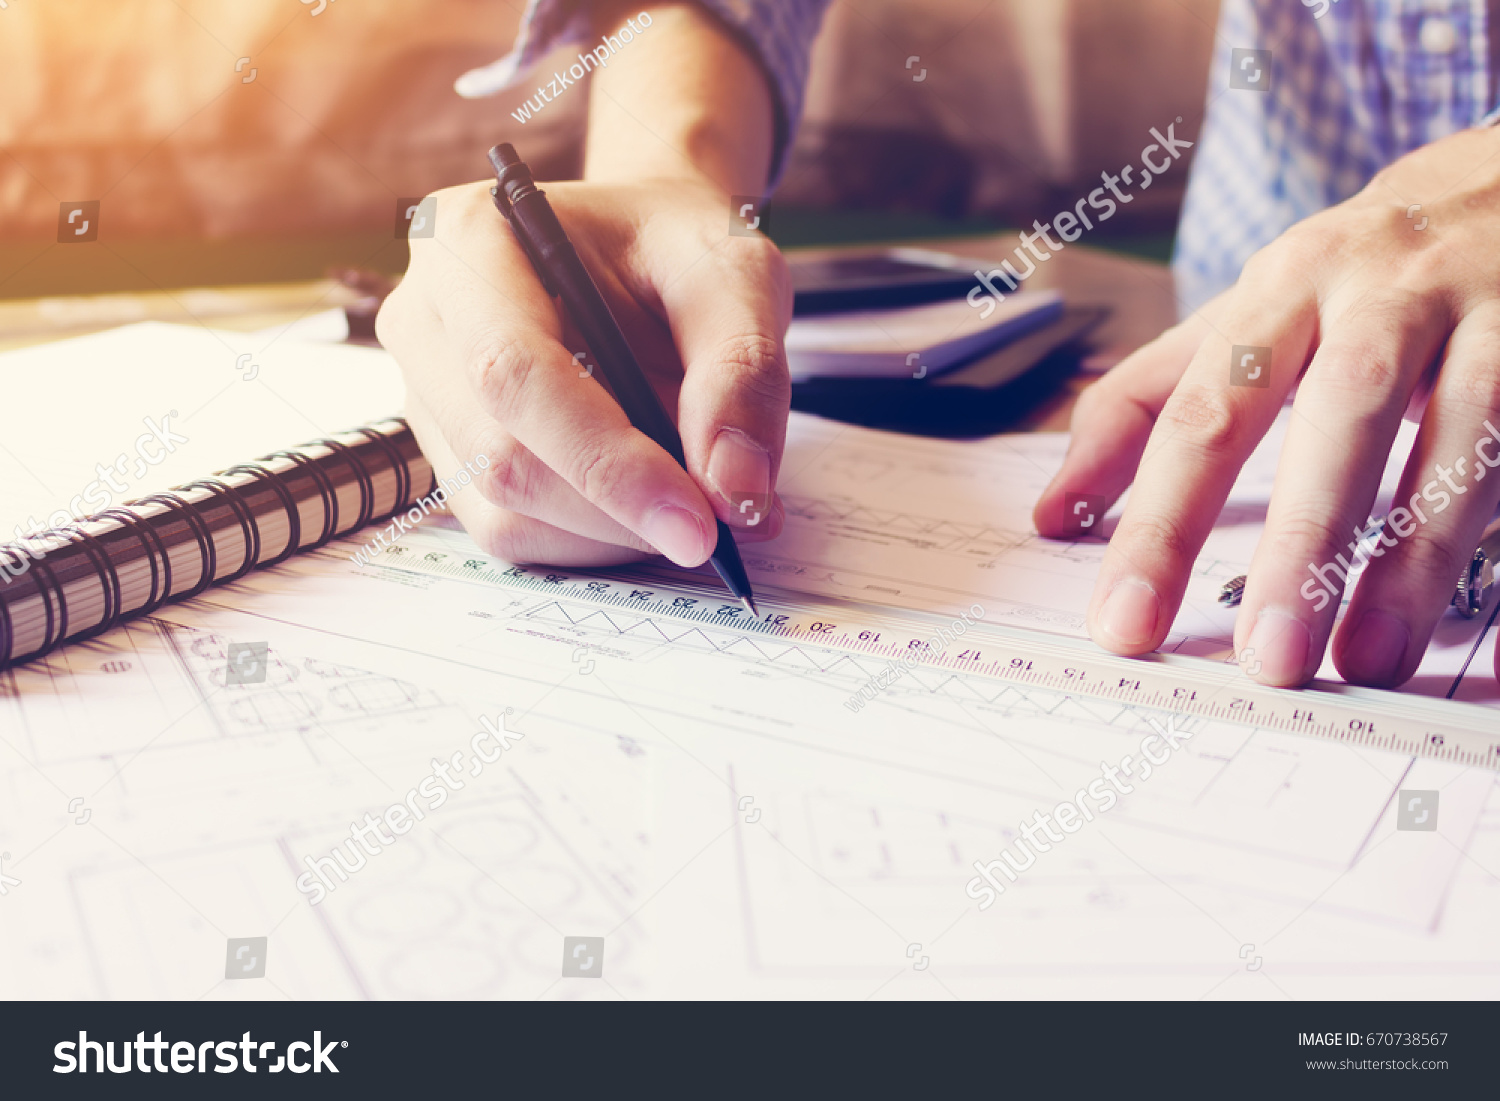 Asian man hand drawing on blueprint stock photo 670738567 asian man hand drawing on blueprint paper at home office malvernweather Image collections